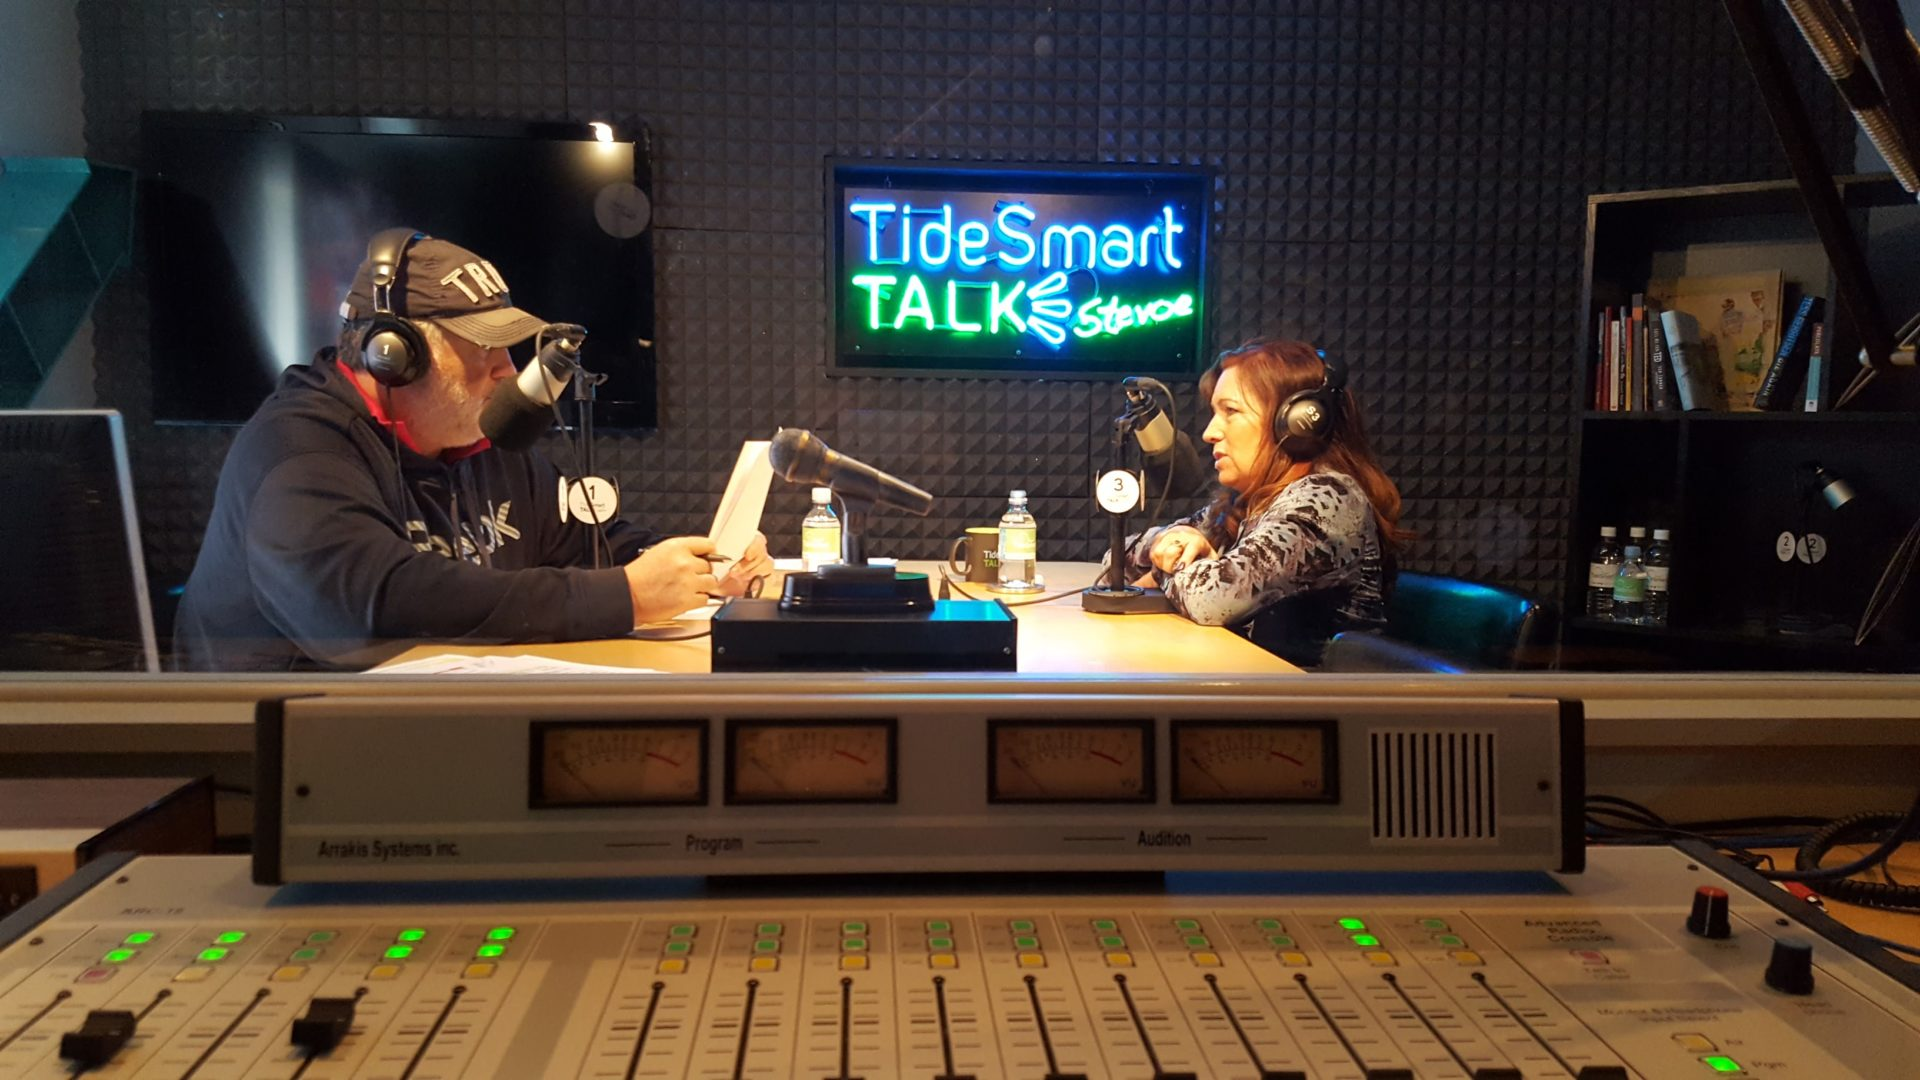 Host of TideSmart Talk with Stevoe, Steve Woods, welcomed the founder of The Anthony Bates Foundation, Sharon Bates (at right).